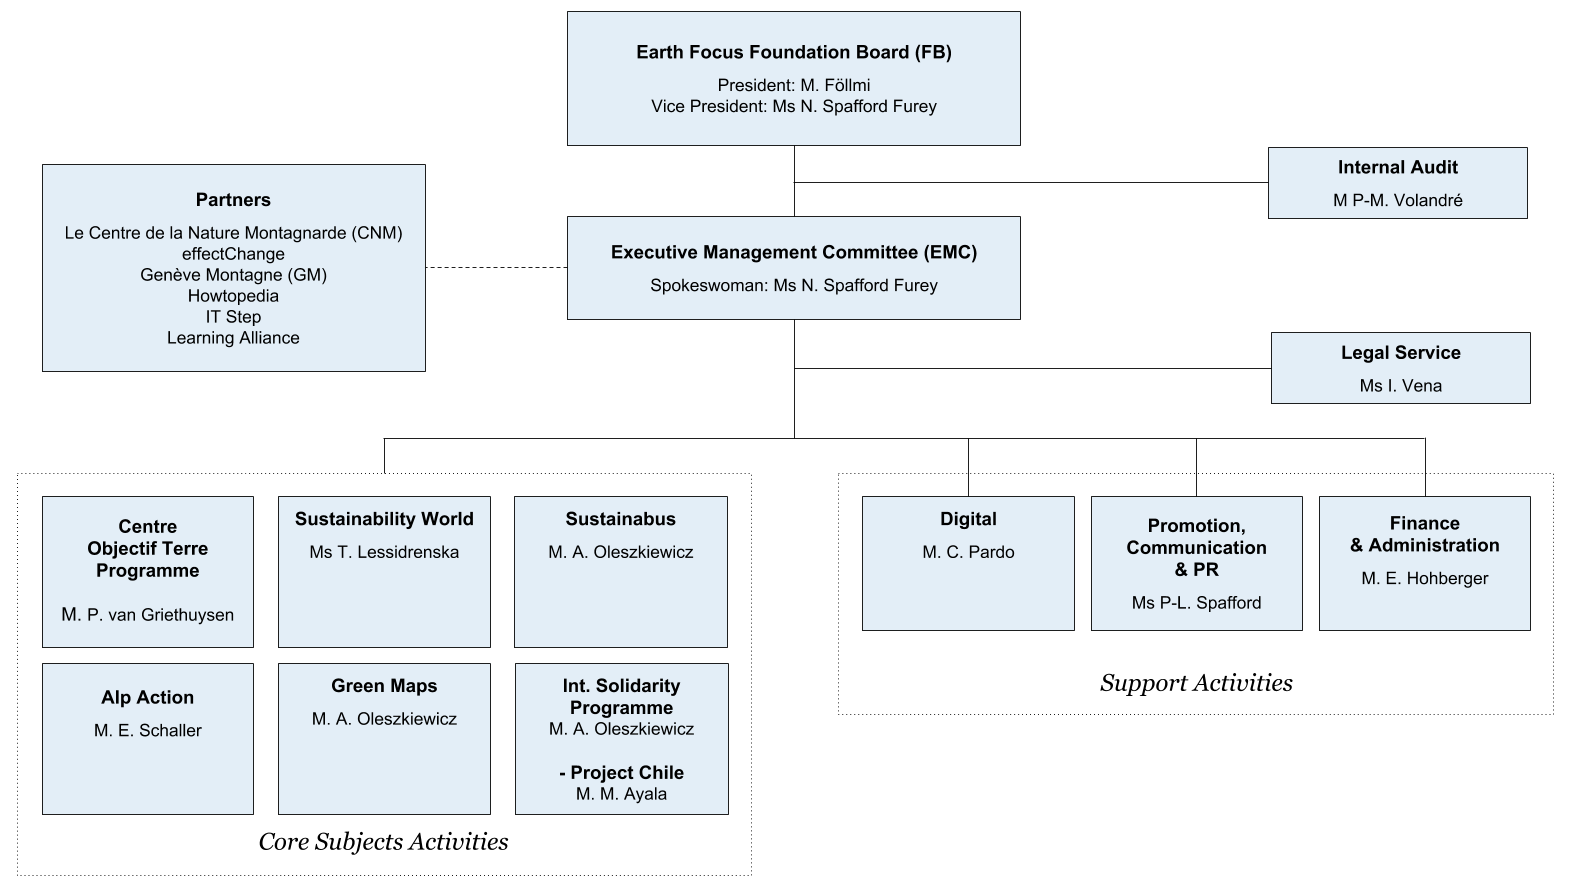 Structure & Members - Earth Focus Foundation